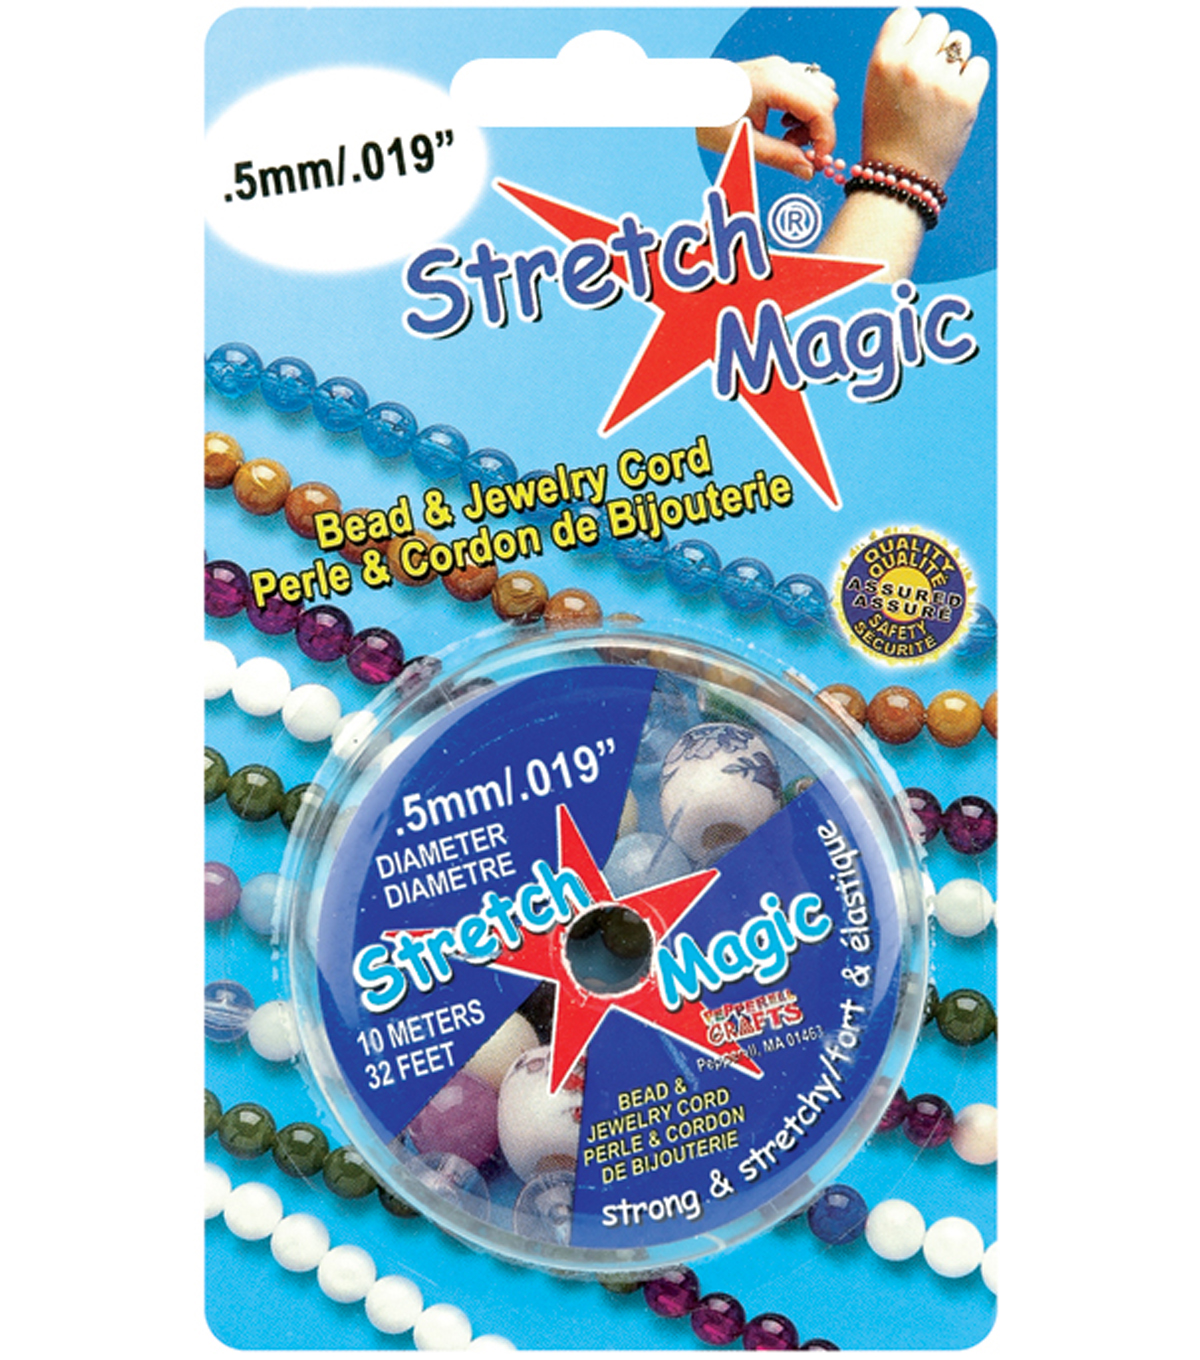 Stretch Magic .5mm Bead & Jewelry Cord-10 Meters